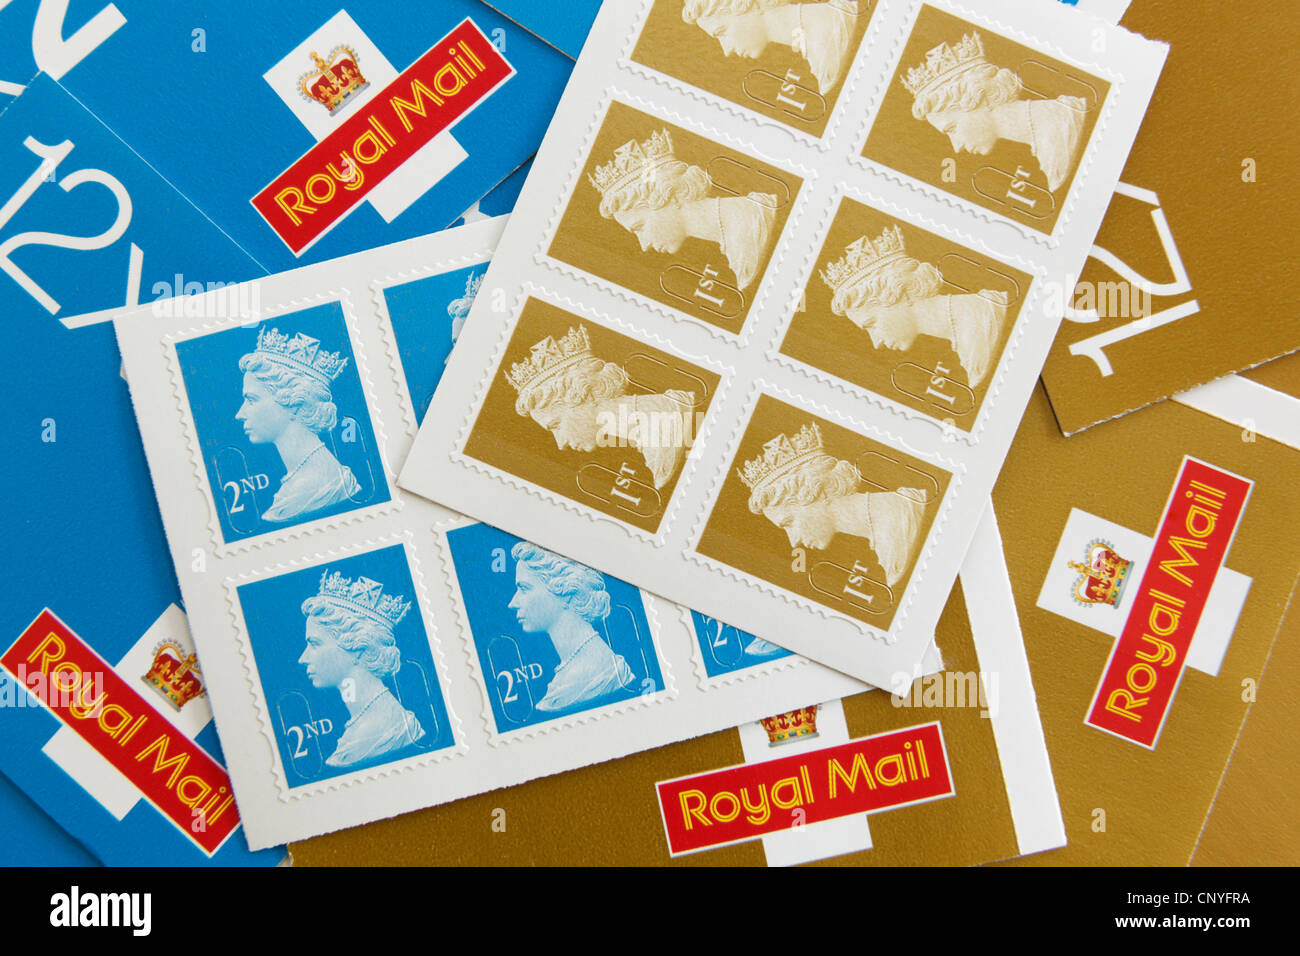 UK, Britain. Royal Mail first and second class postage stamps and stamp books - Stock Image